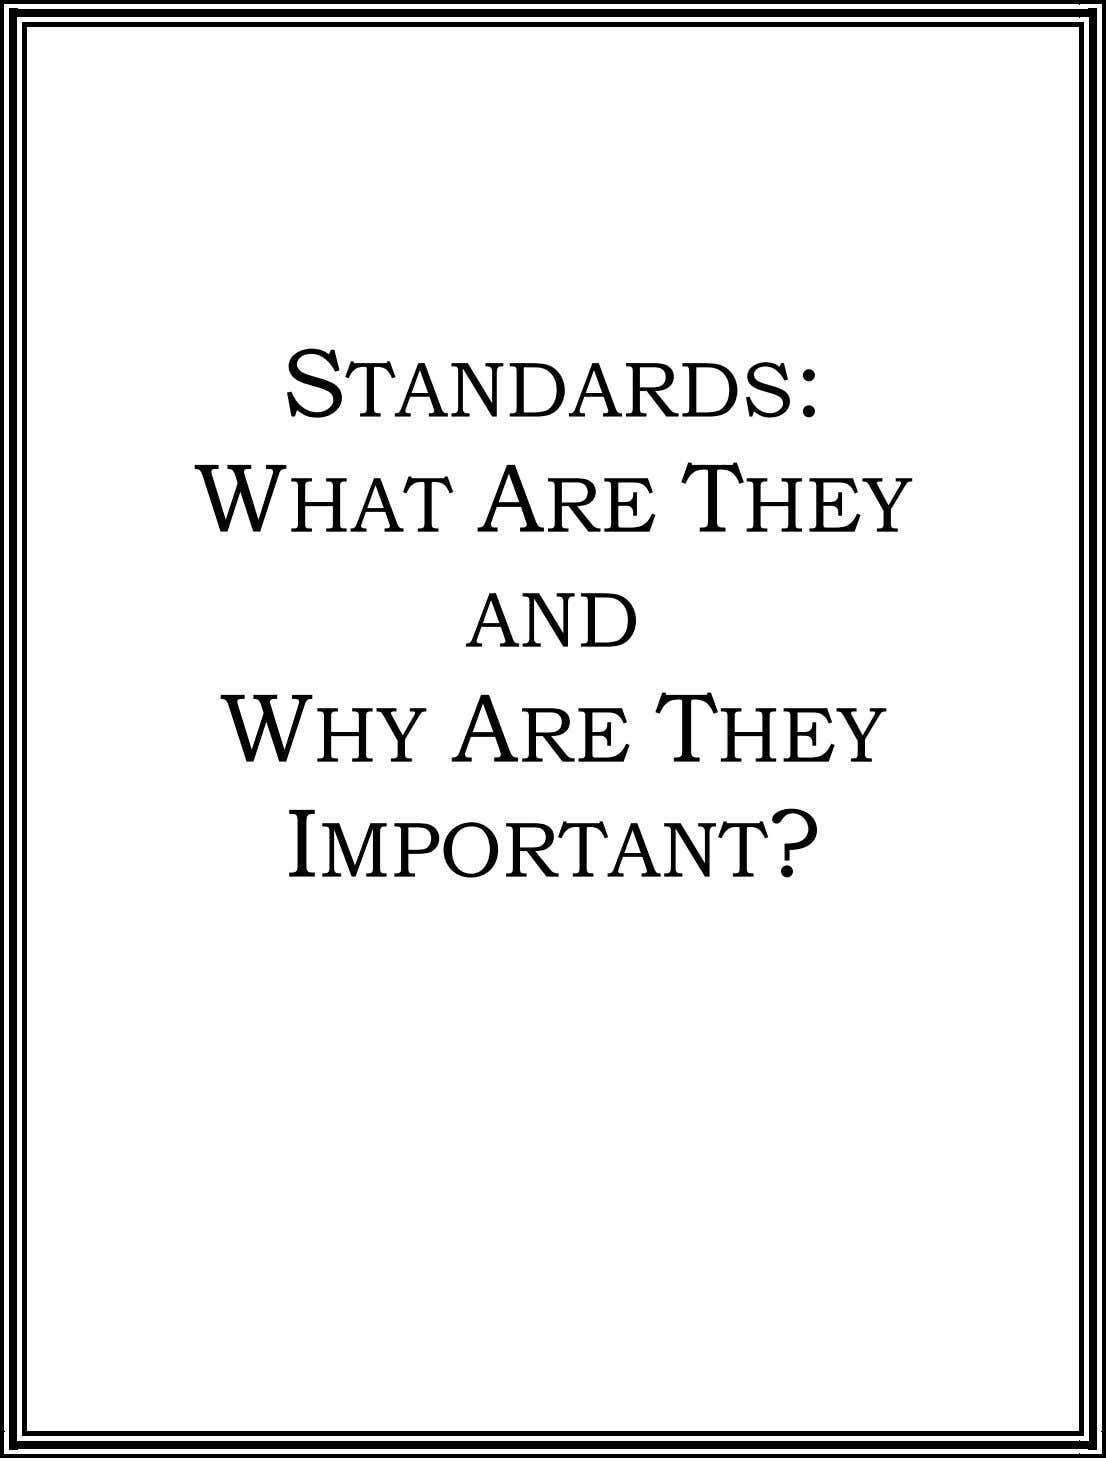 STANDARDS: WHAT ARE THEY AND WHY ARE THEY IMPORTANT?